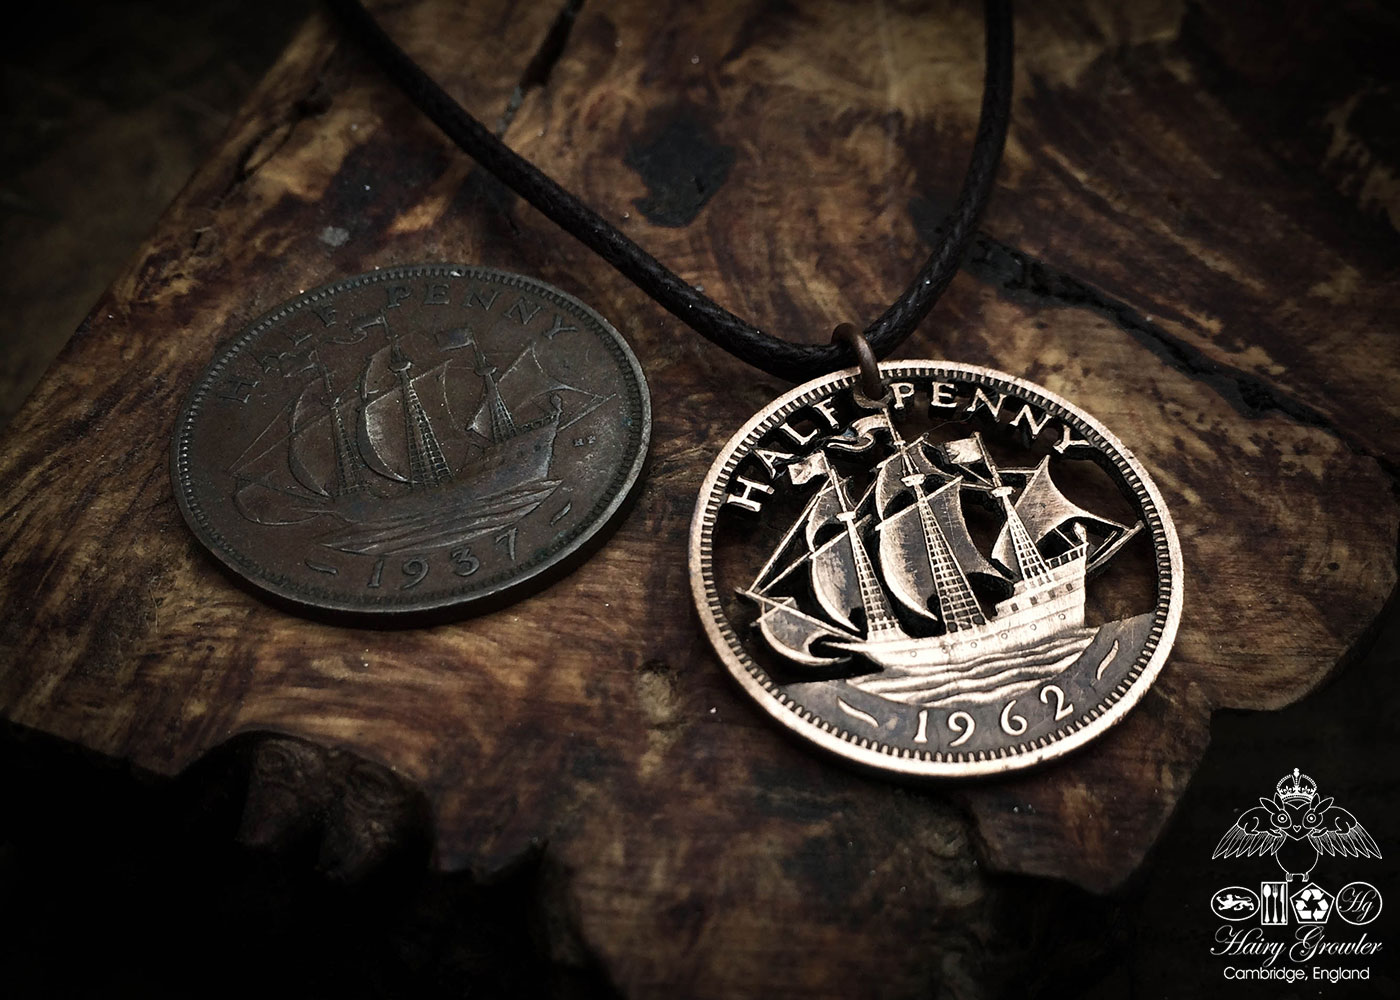 Handmade and upcycled Golden Hind ship coin pendant necklace